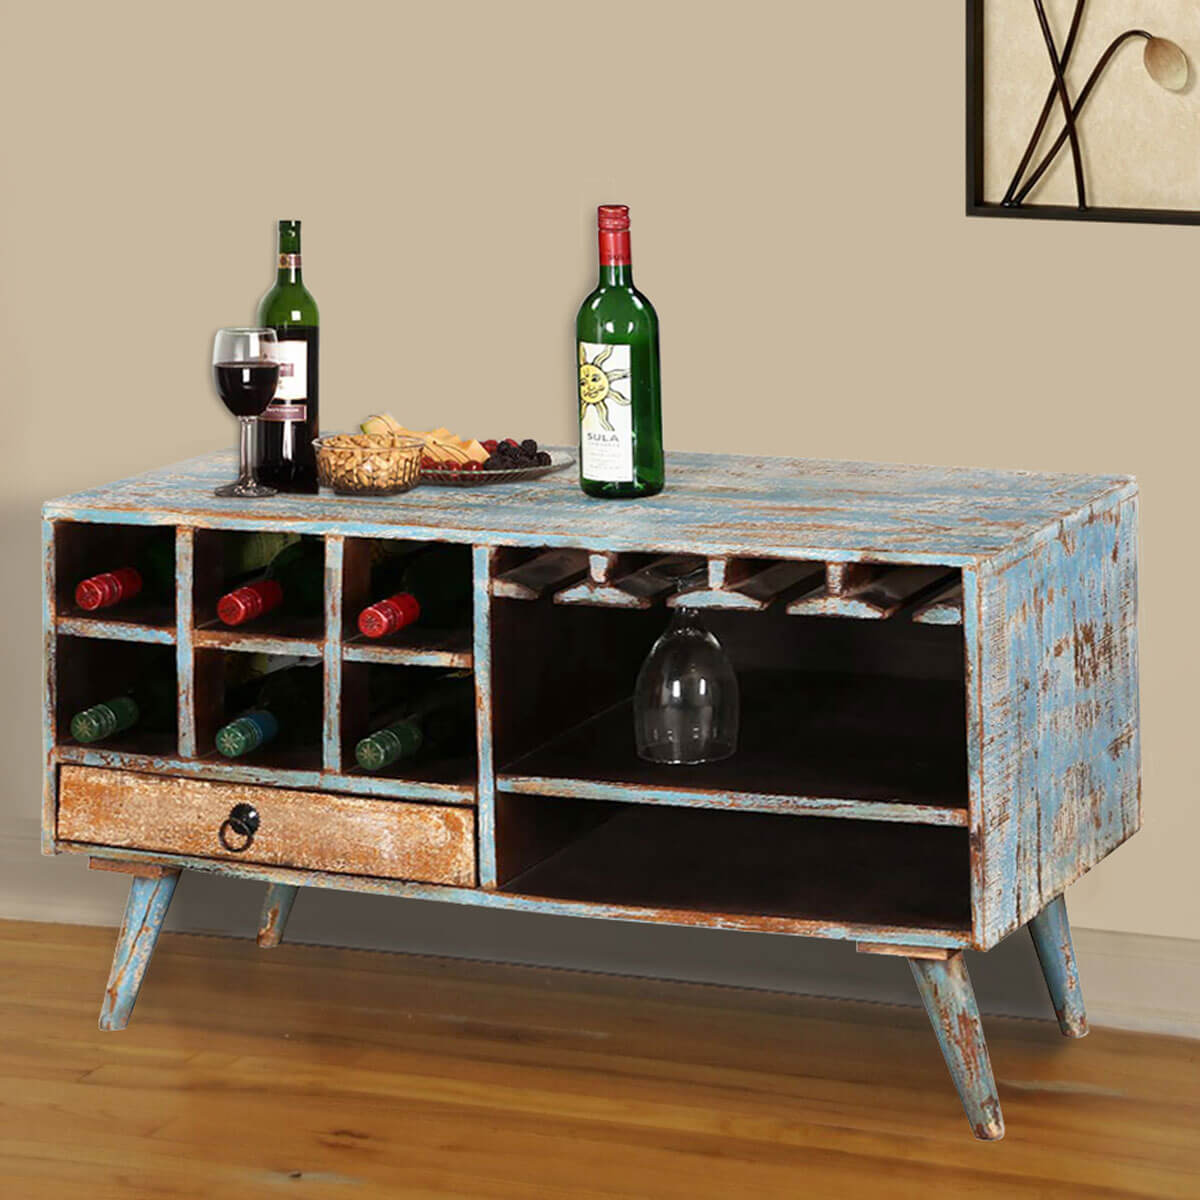 Travis Trail Open Storage Wine Rack Console Table With. Modern Executive Desks. Corner Desk Set. Flamingo Las Vegas Front Desk. Folding Treadmill Desk. Ikea Malm Bed With Drawers. Ge Monogram Refrigerator Drawers. Plastic Side Table. Mobile Drawers